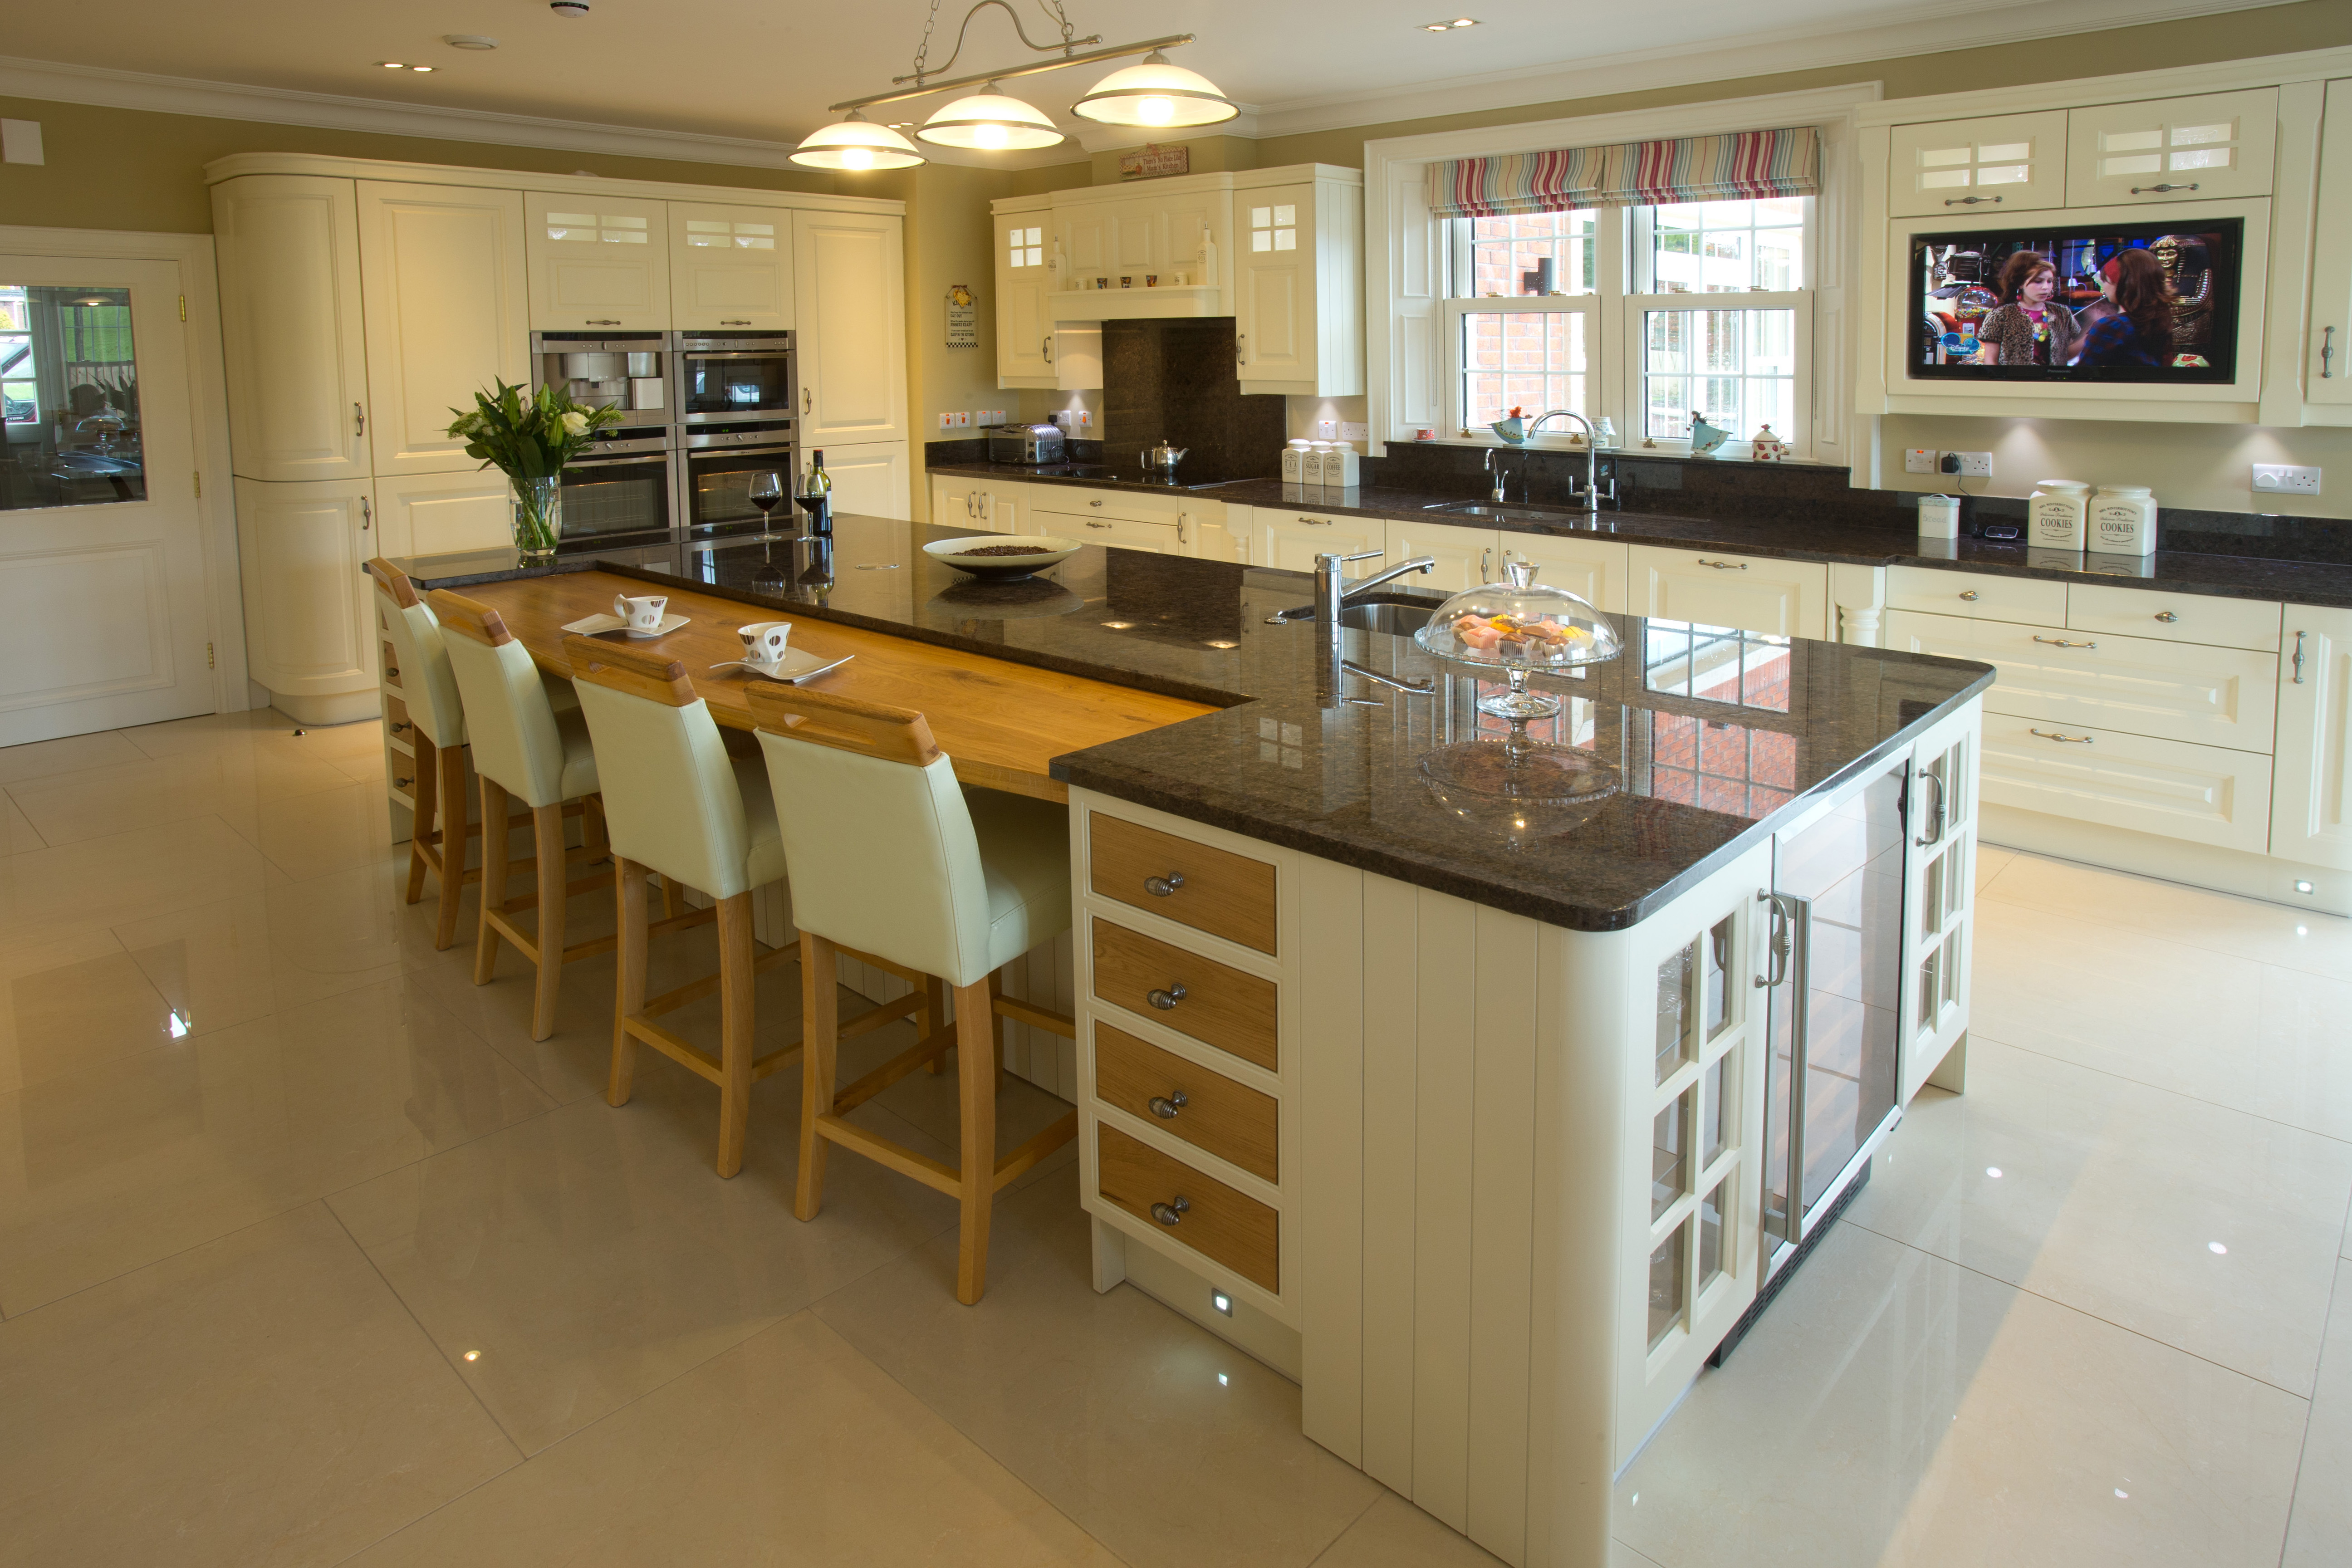 Woodbank Kitchens Northern Ireland Based Kitchen Design Company Woodbank Kitchens Northern